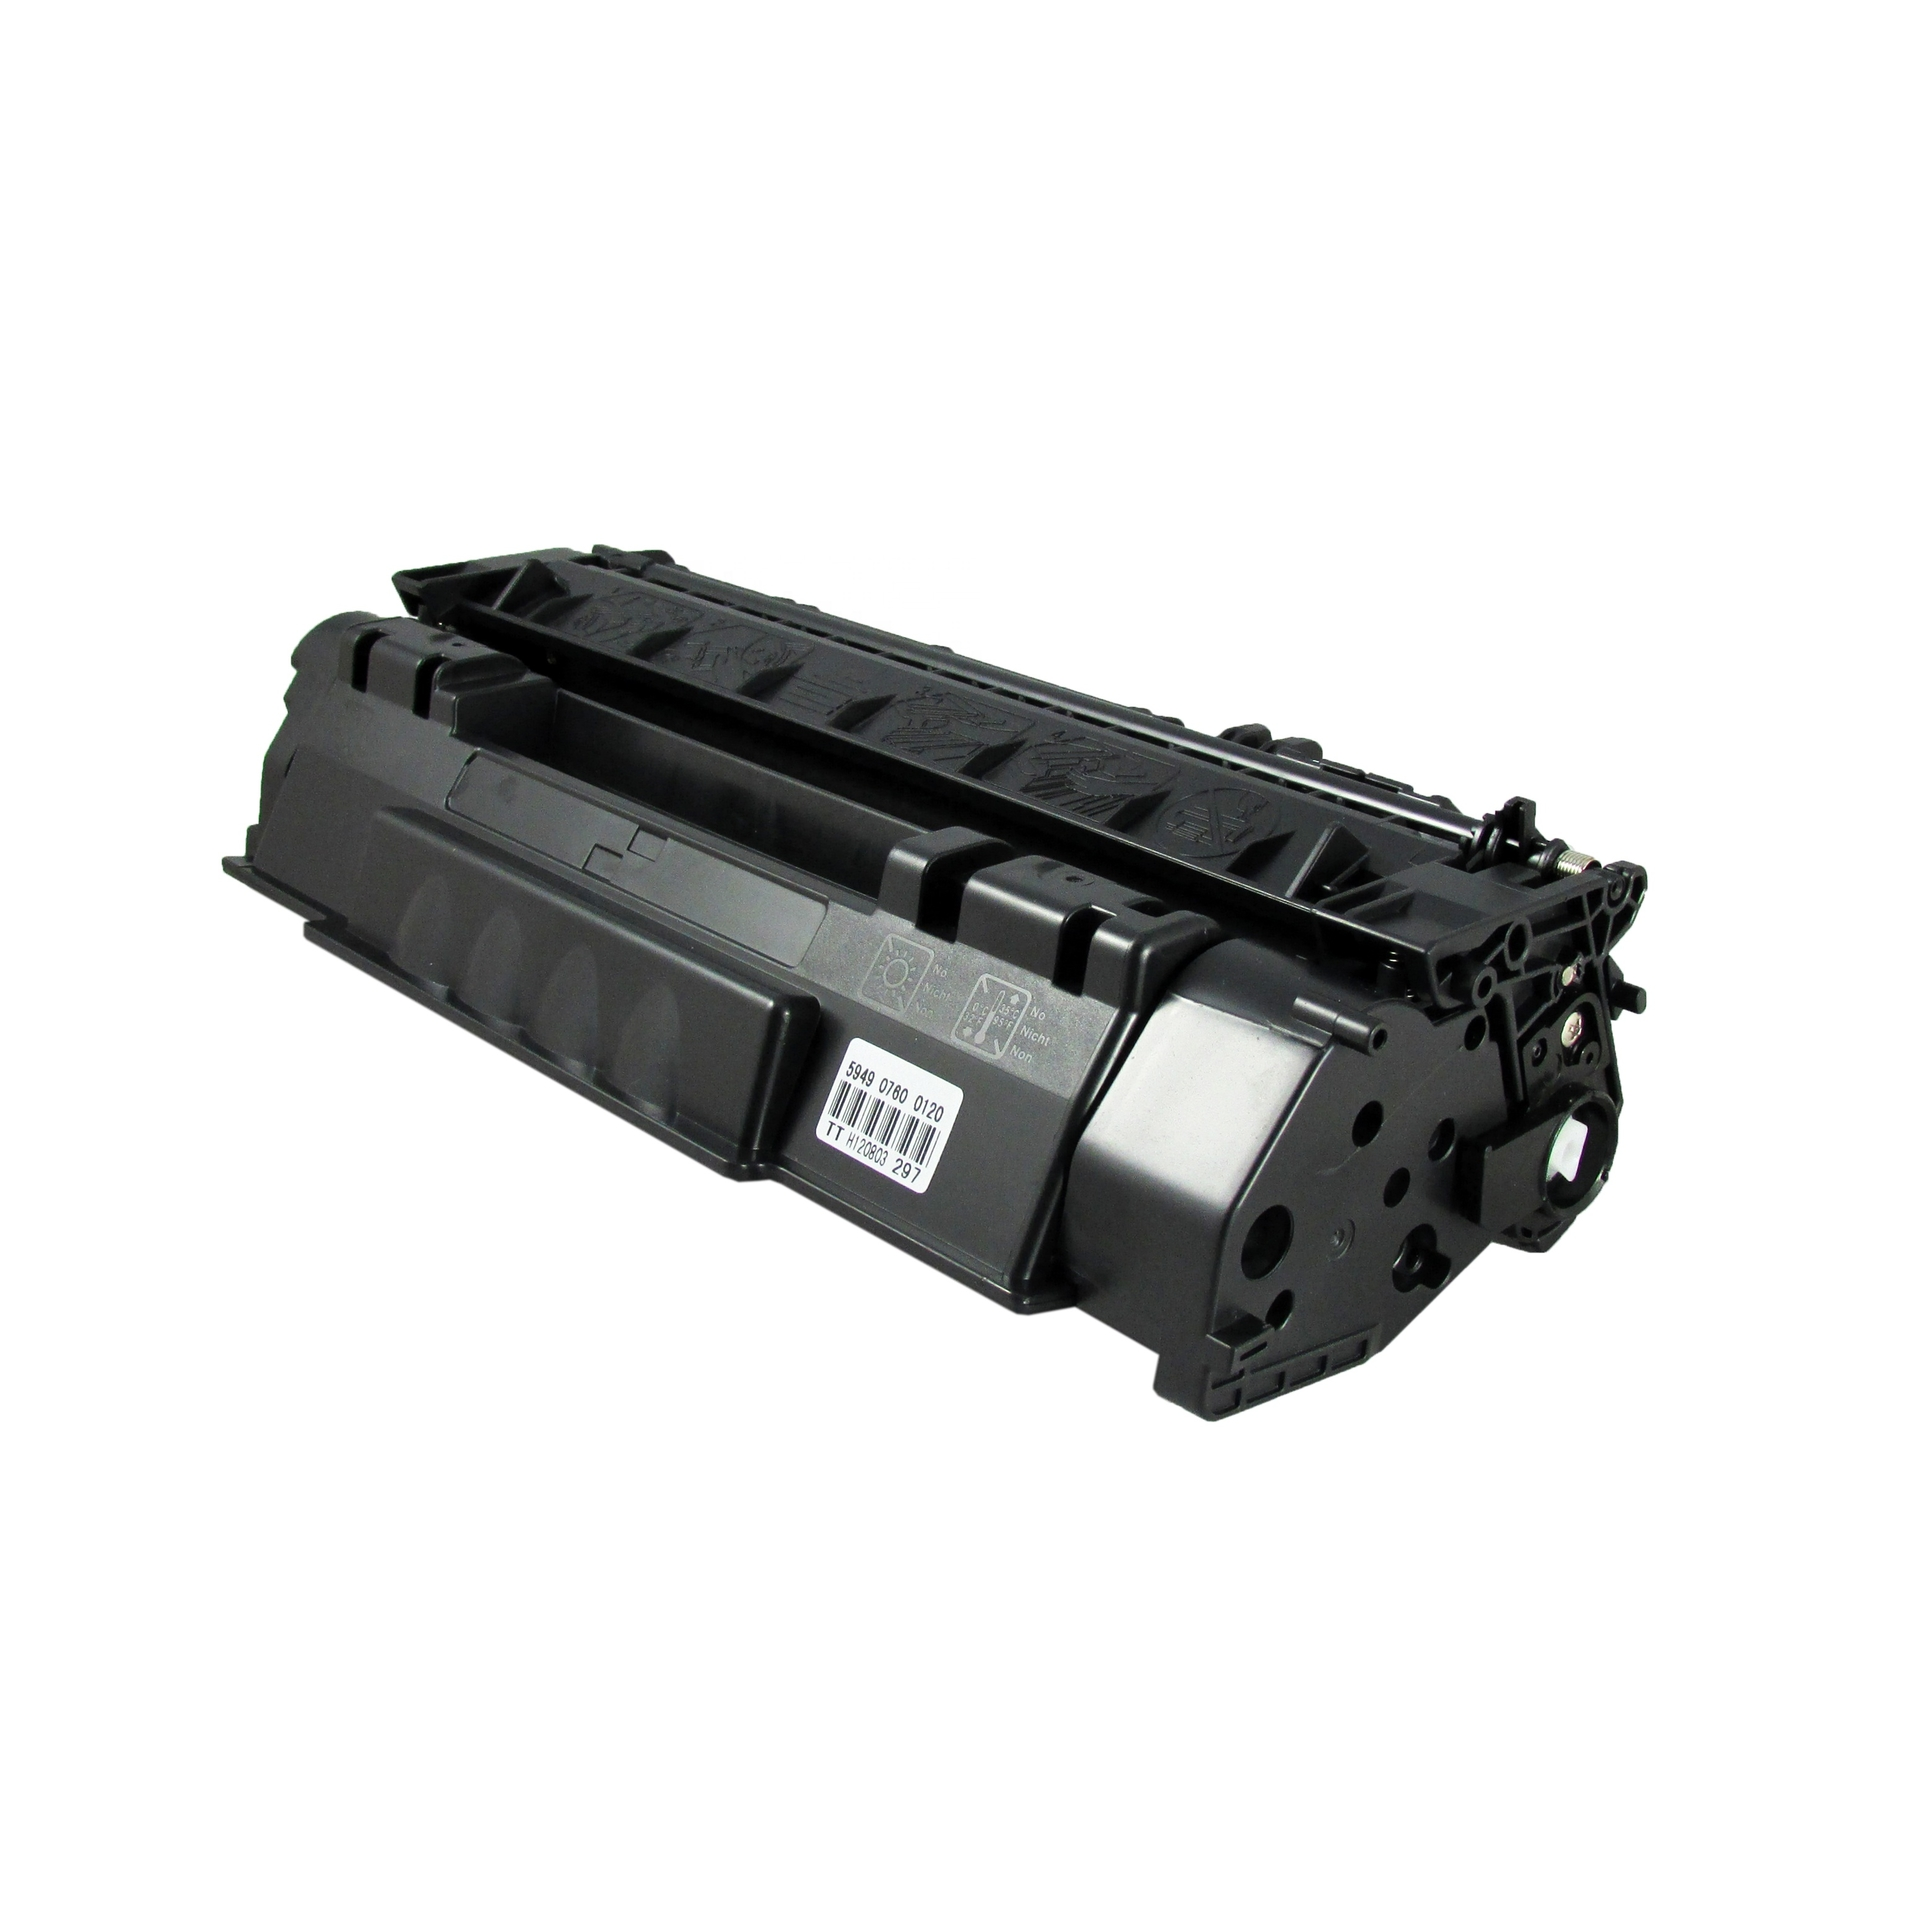 High quality premium laser toner cartridge for HP Laserjet 1160/1320/1320t/1320n/1320nw/1320tn/3390 /3392